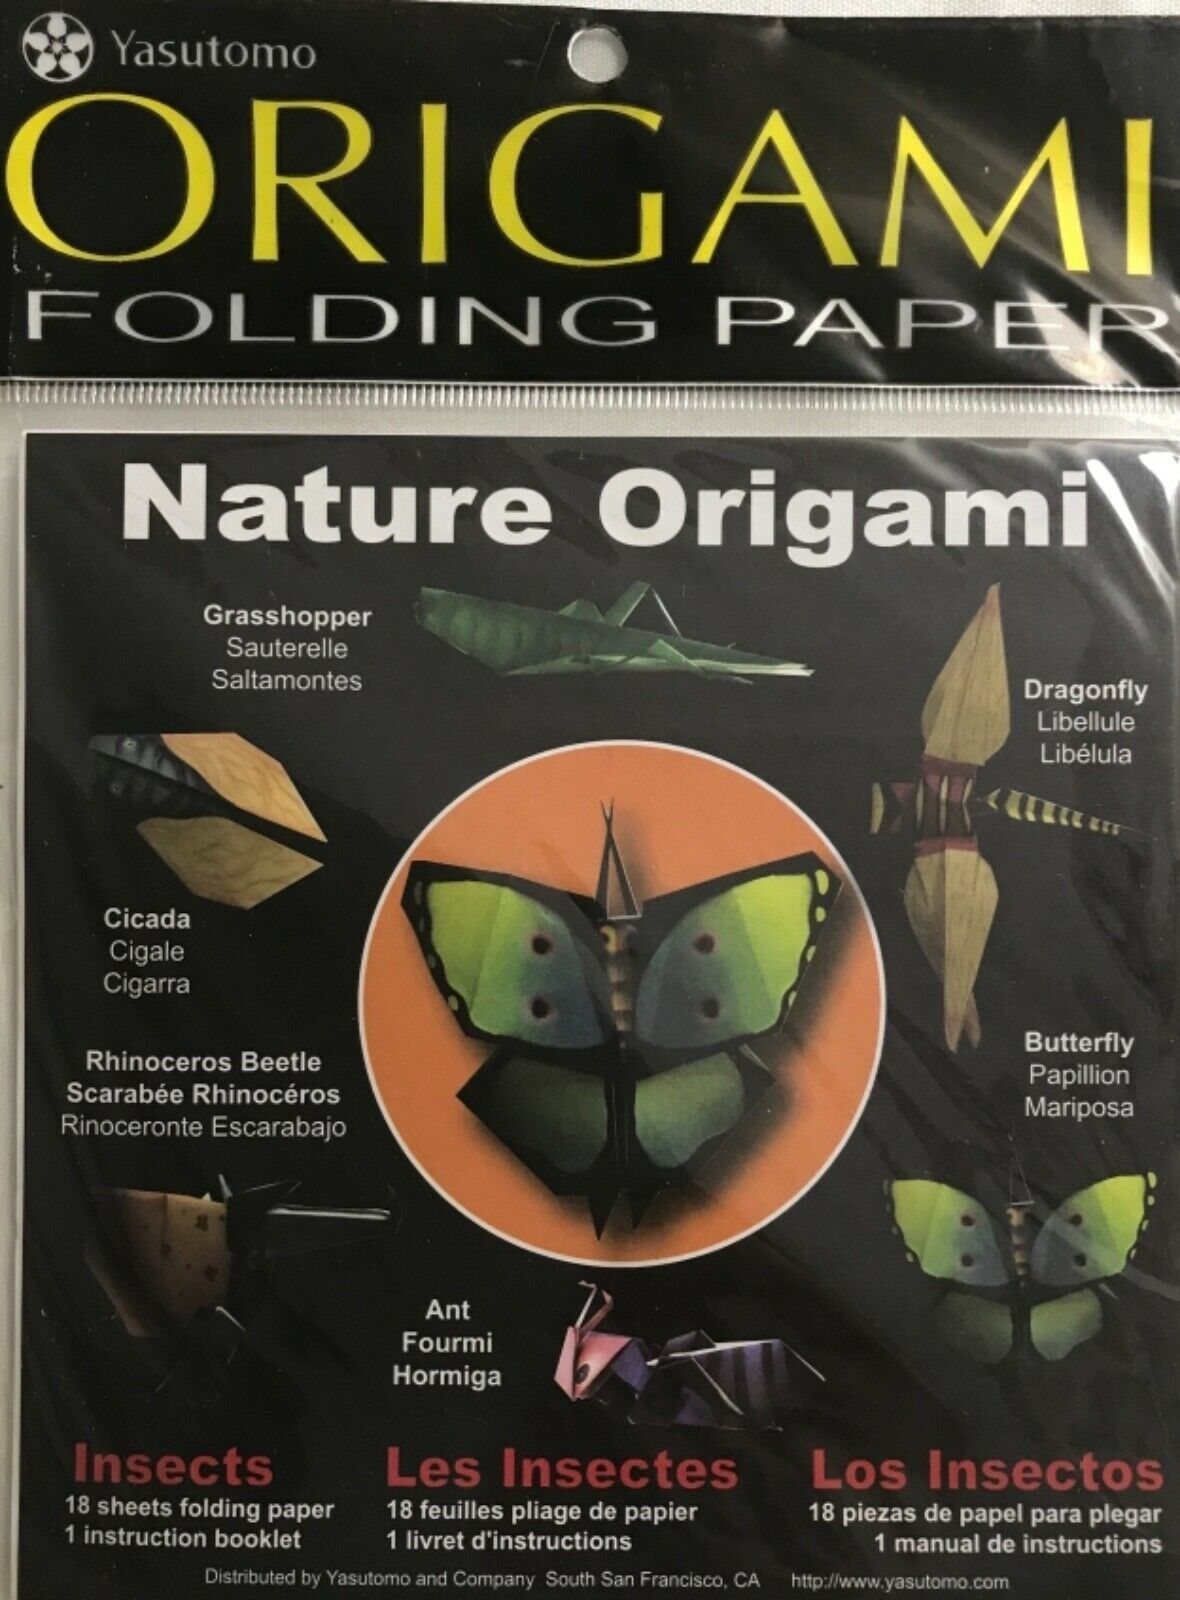 Primary image for Yasutomo Nature Origami Insects Folding Paper 15 cm x 15 cm, 18 Sheets